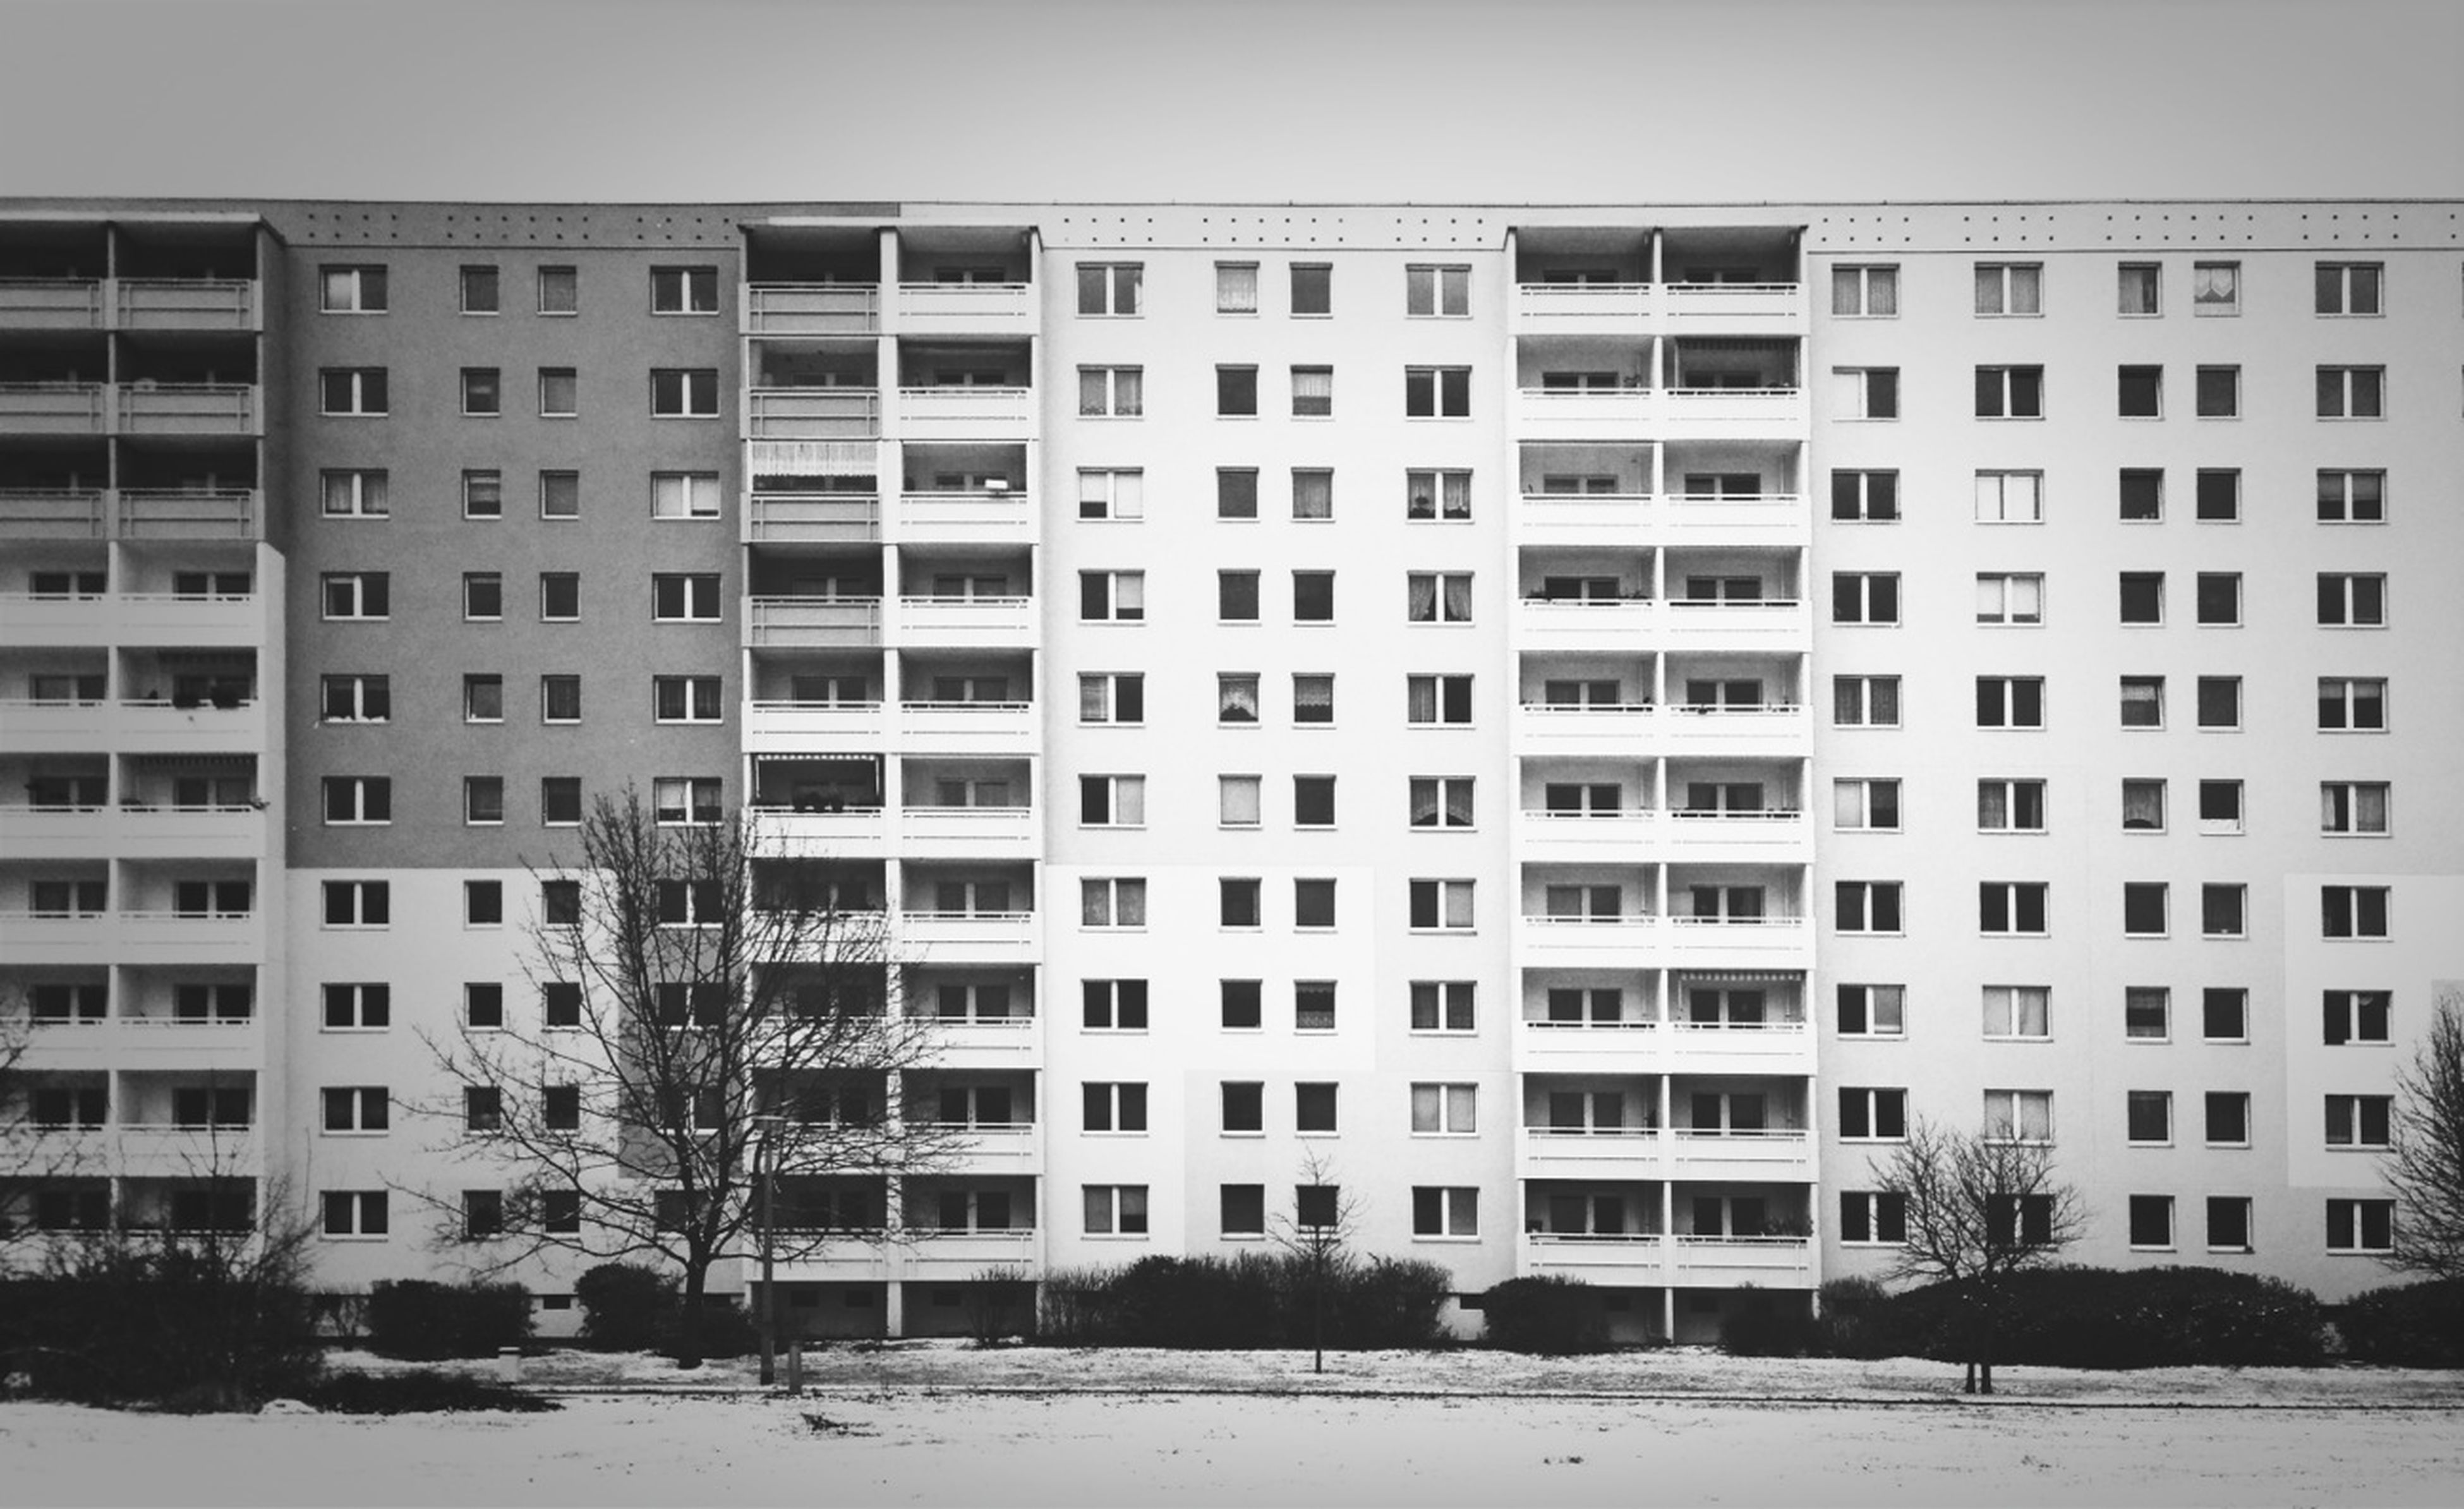 building exterior, architecture, built structure, window, building, residential building, residential structure, city, house, in a row, outdoors, day, exterior, repetition, no people, facade, snow, side by side, old, glass - material